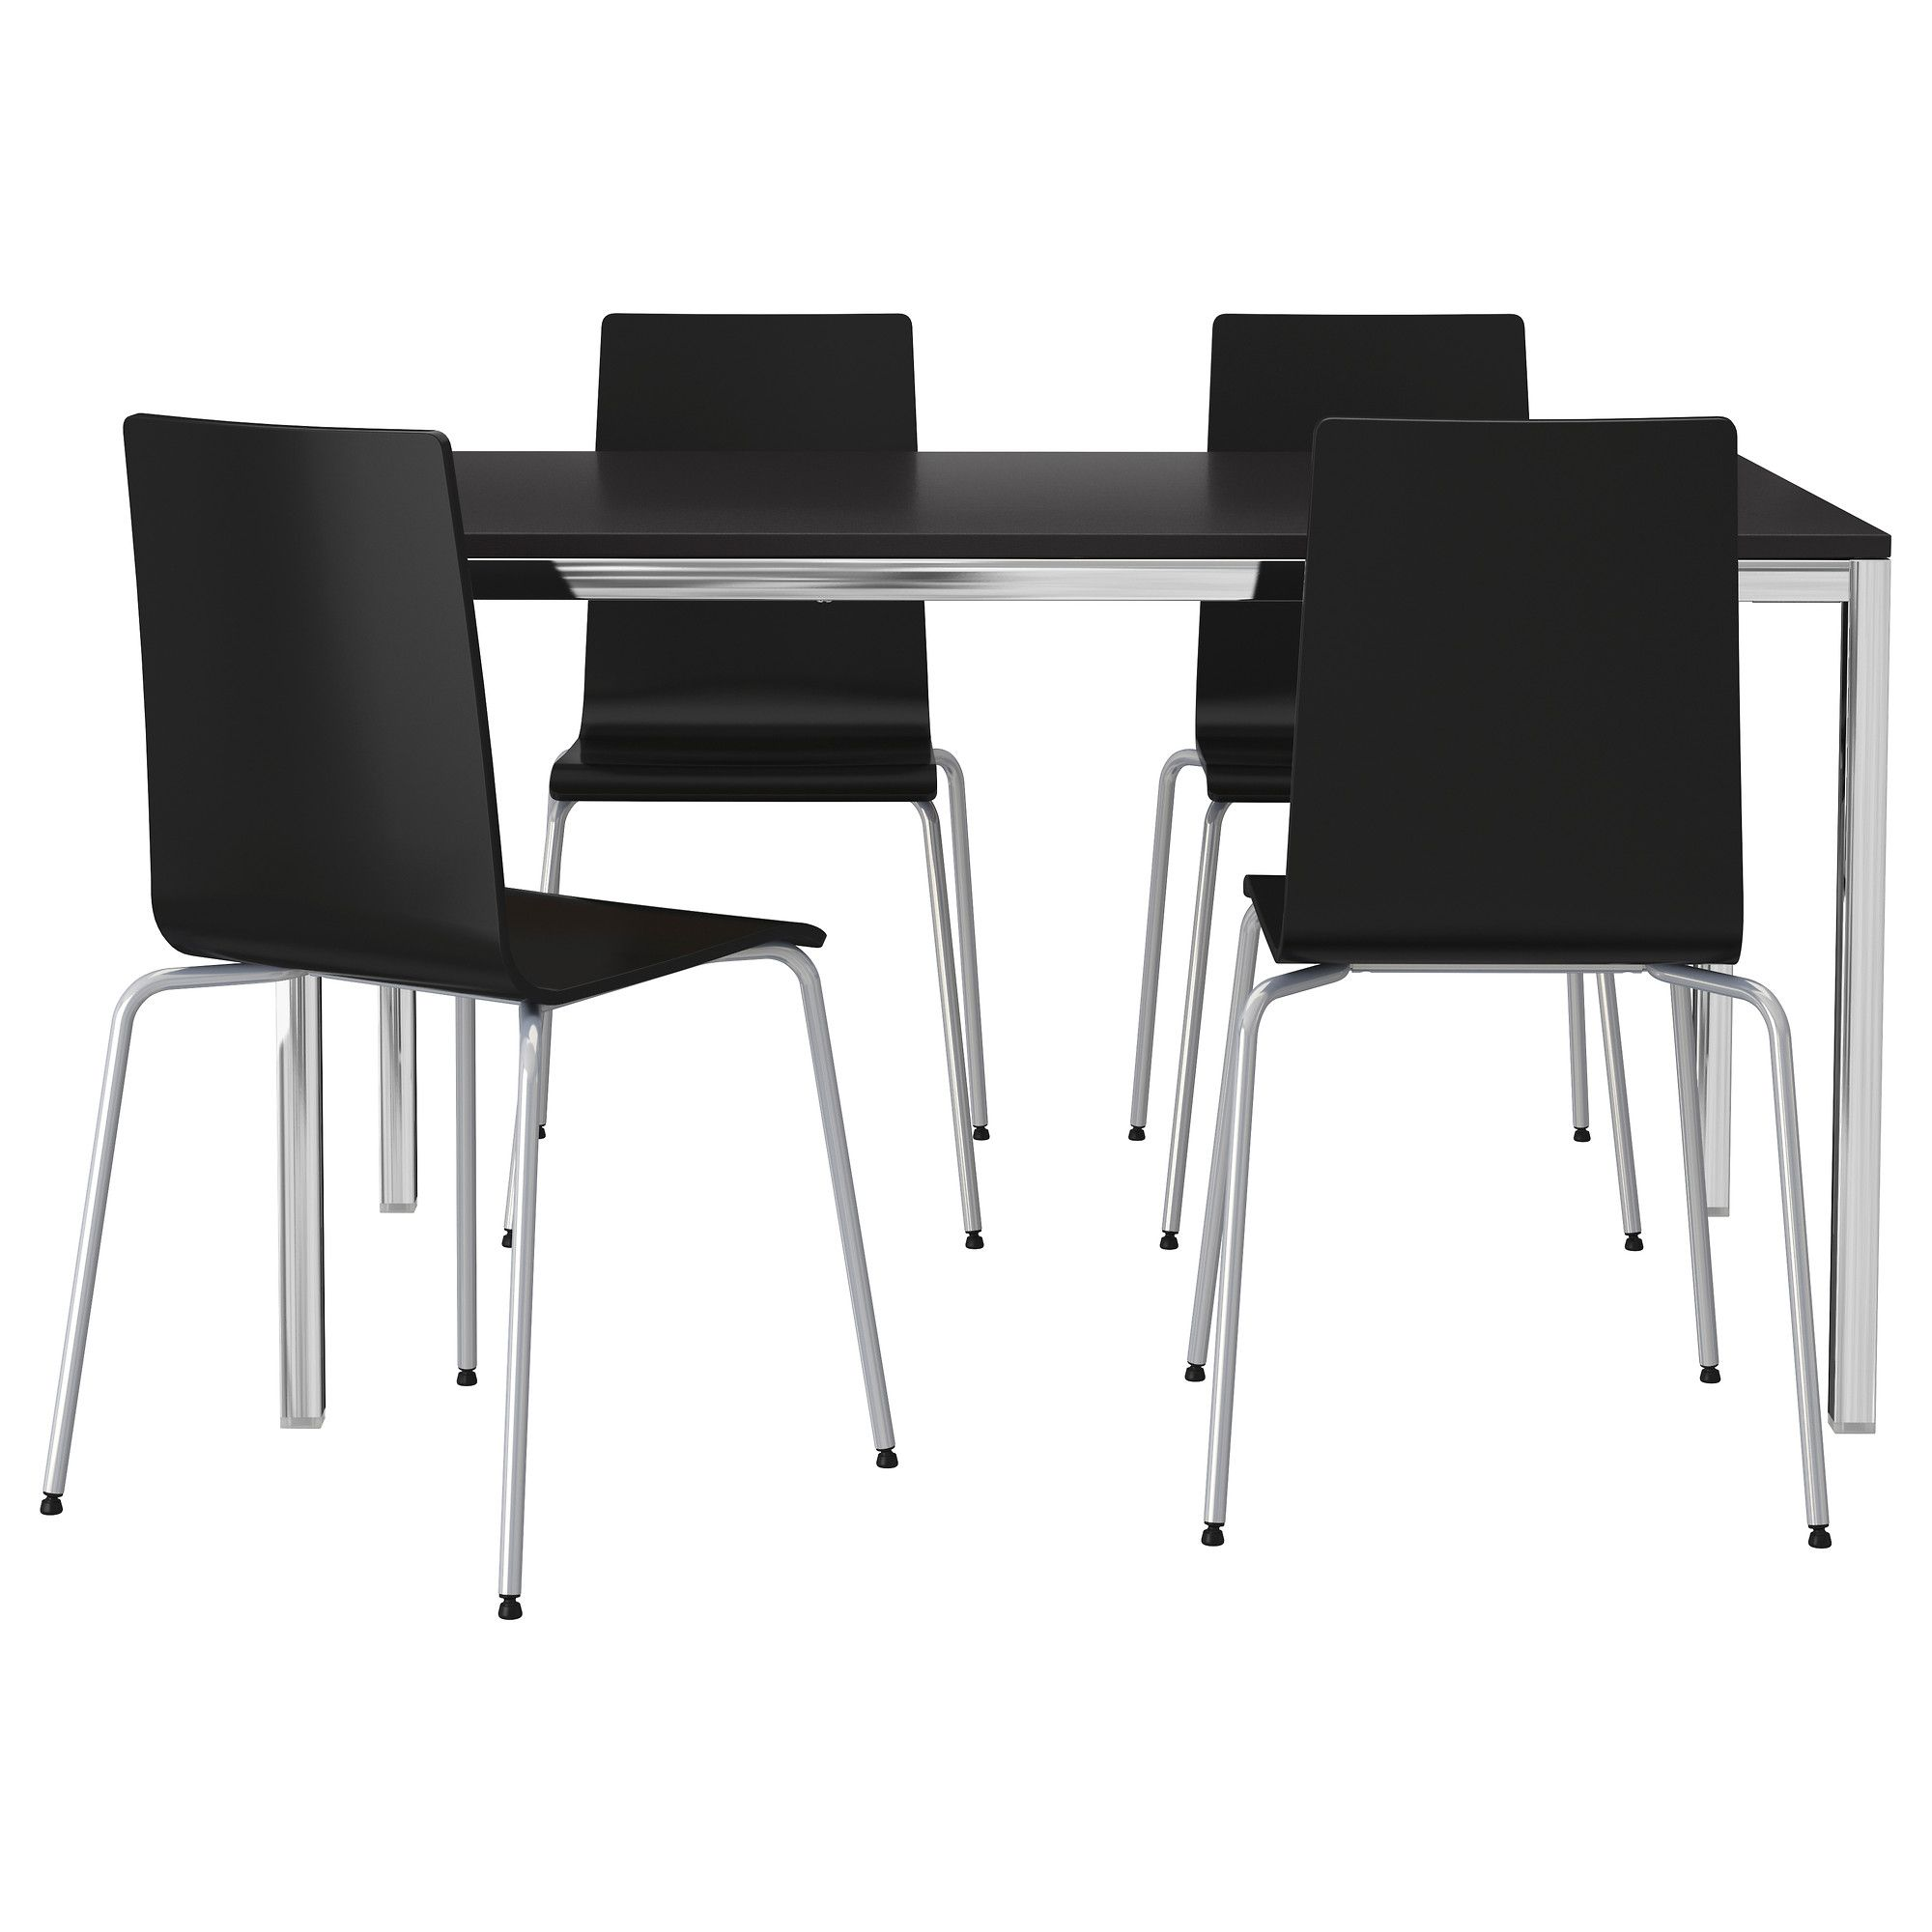 TORSBY/MARTIN Table and 4 chairs - IKEA | Mi casa | Pinterest